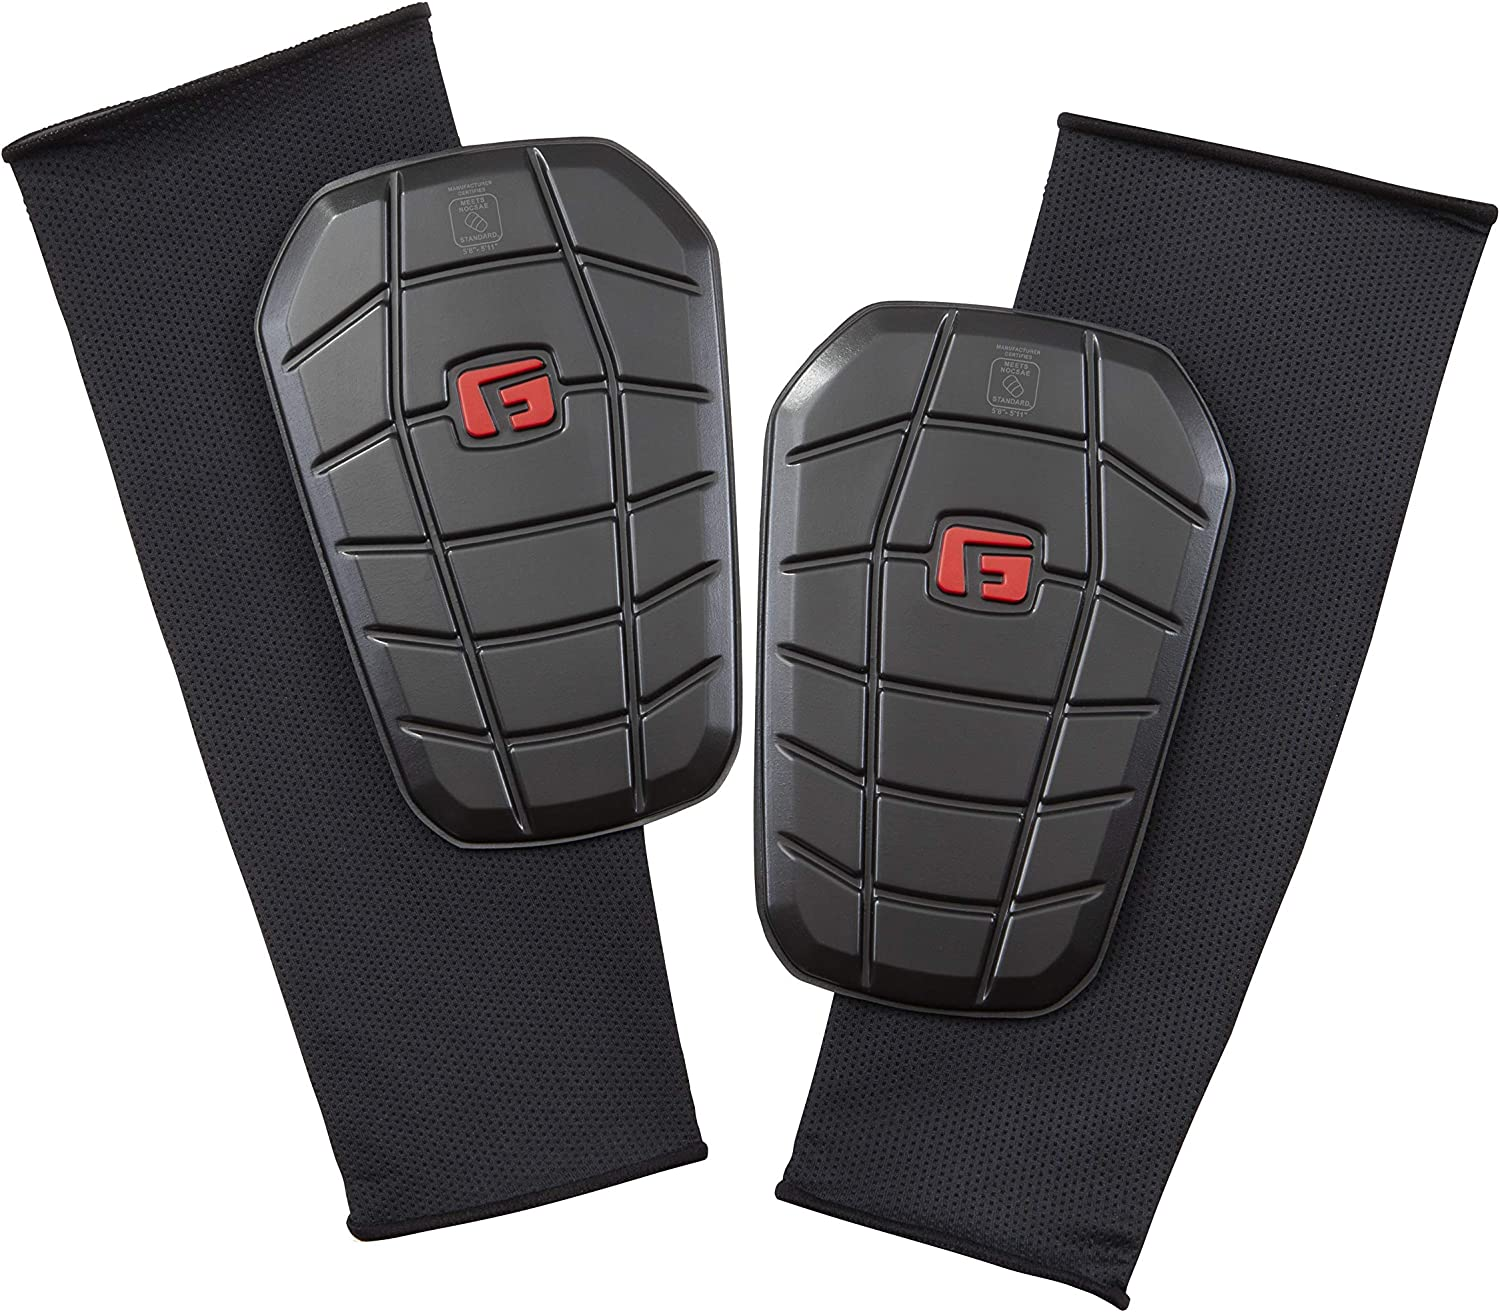 Max 61% OFF G-Form Pro-S Clash Shin Guard Free shipping anywhere in the nation